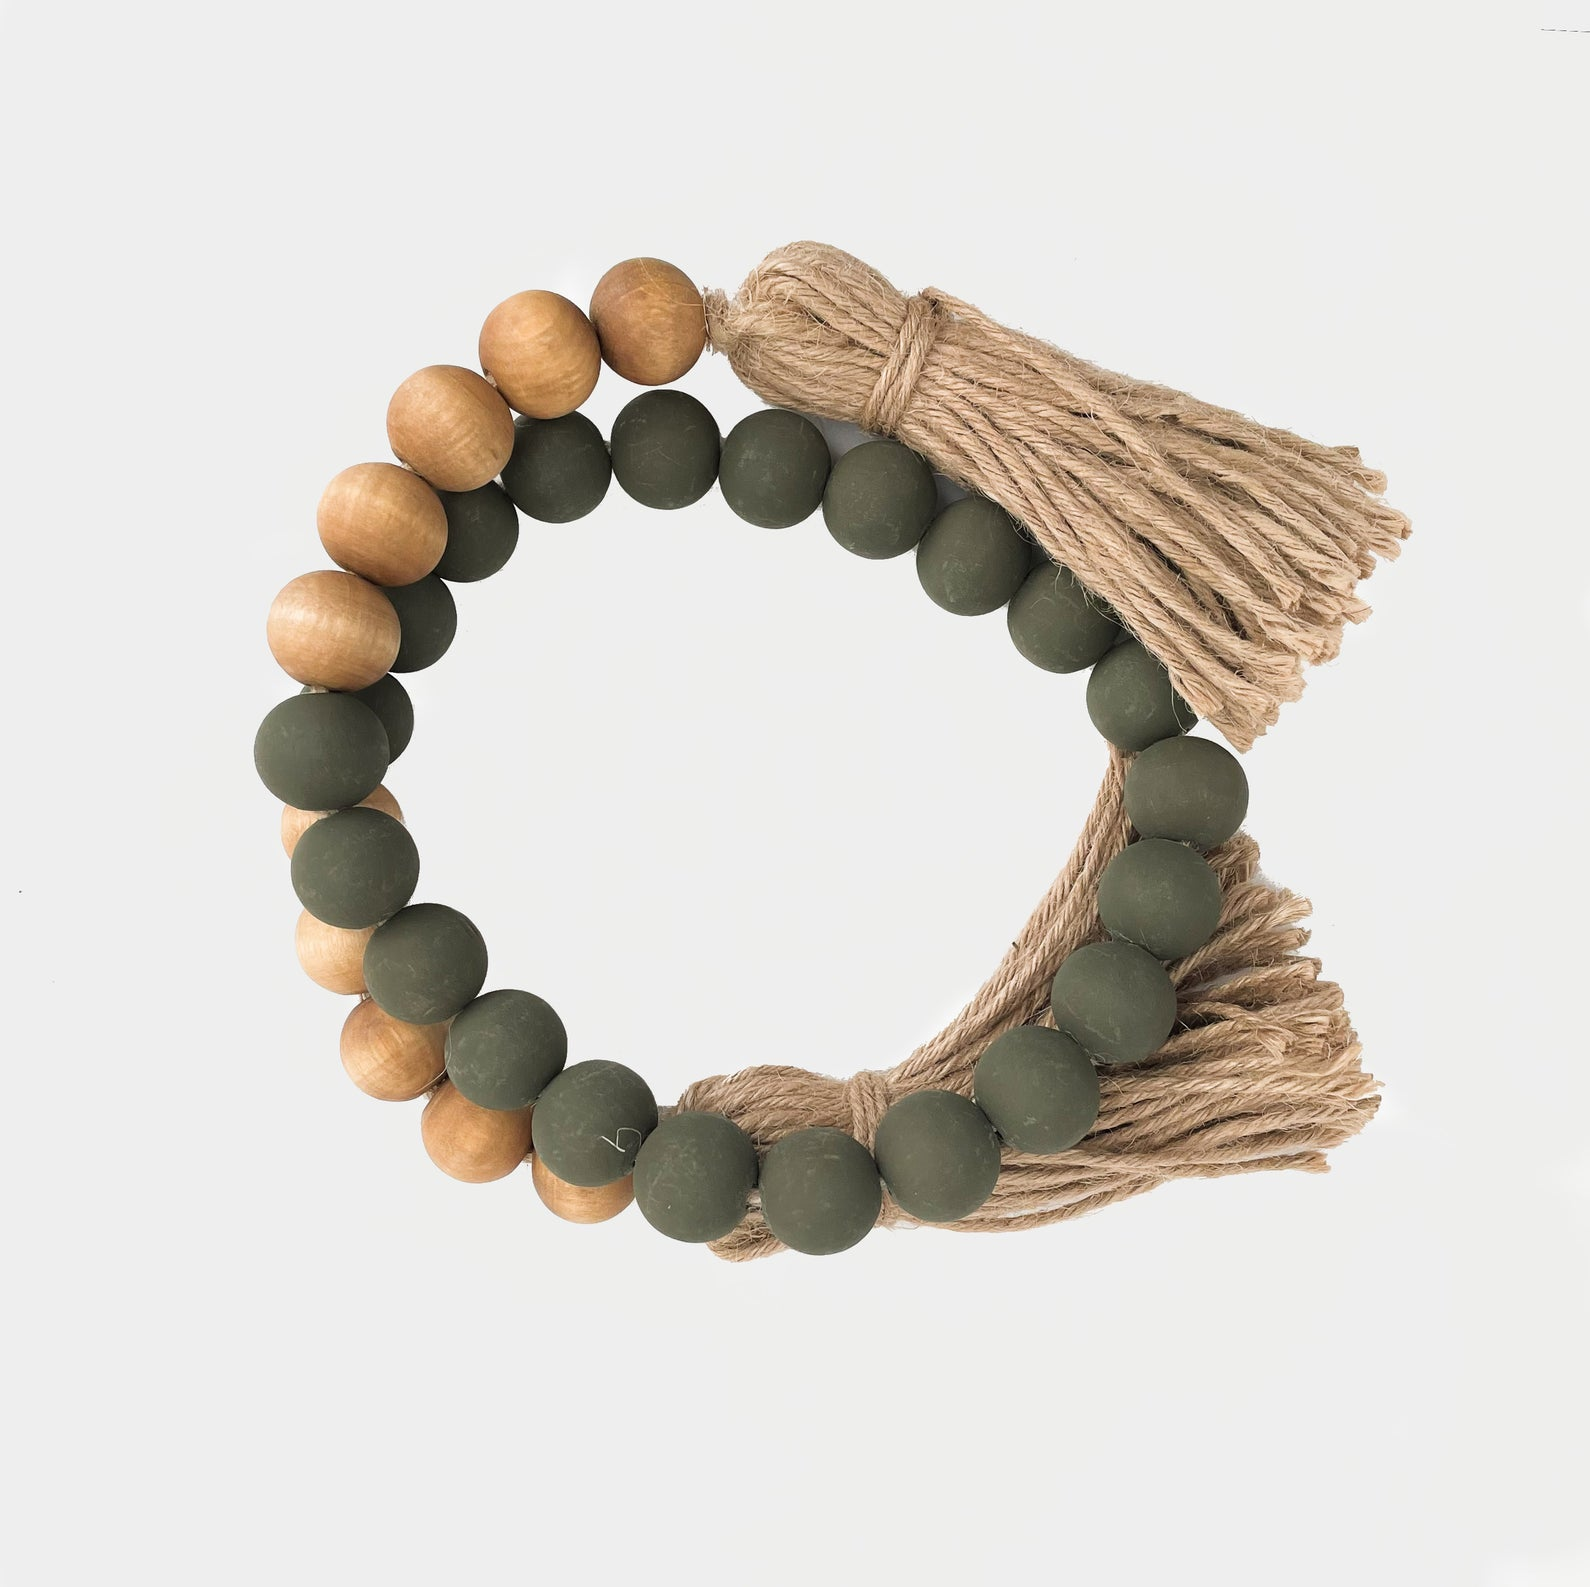 GREEN AND WALNUT WOODEN BEADS WITH JUTE TASSELS